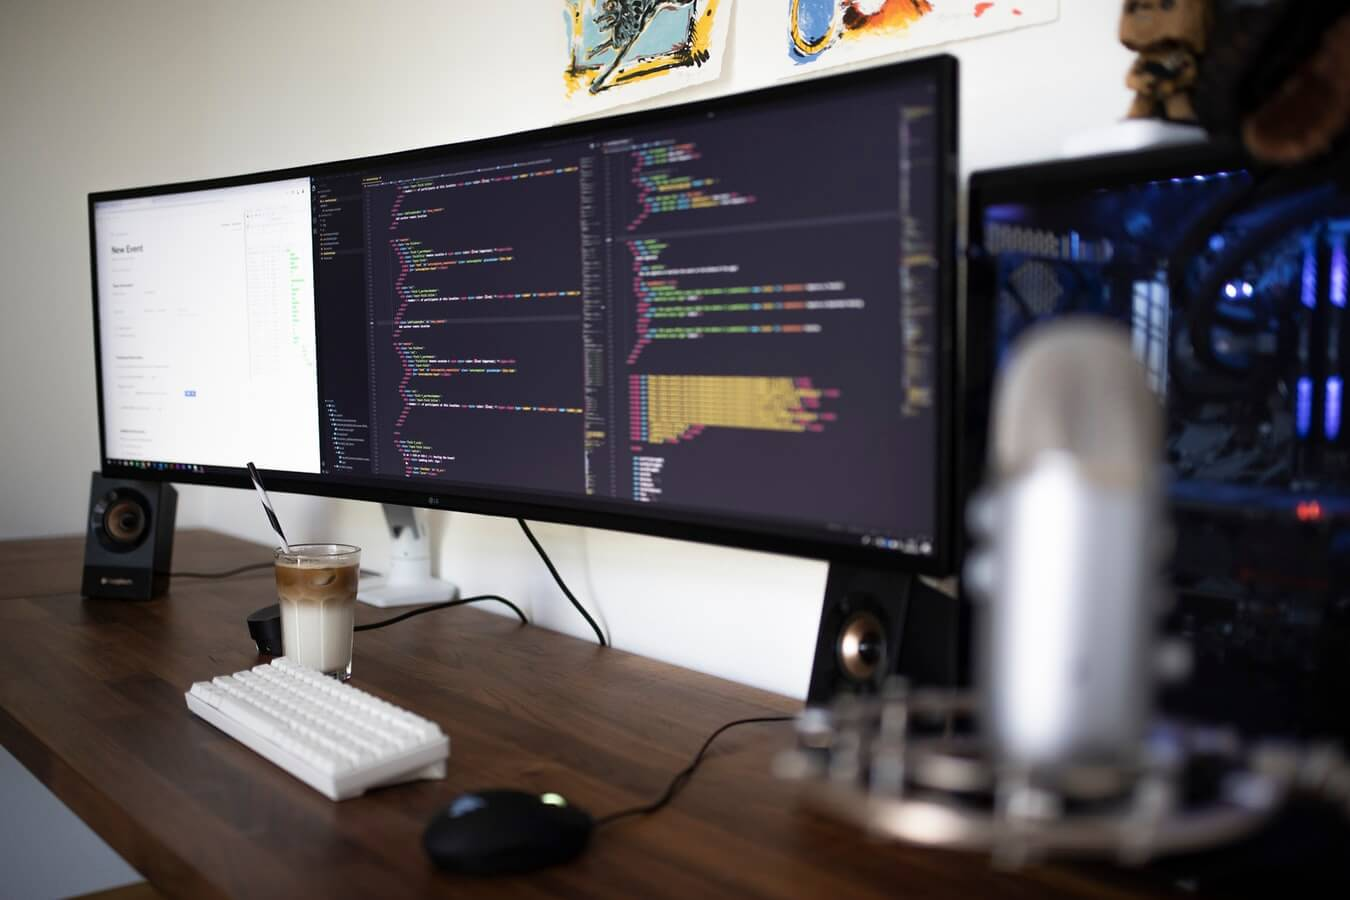 How to use docstrings to improve your Python code